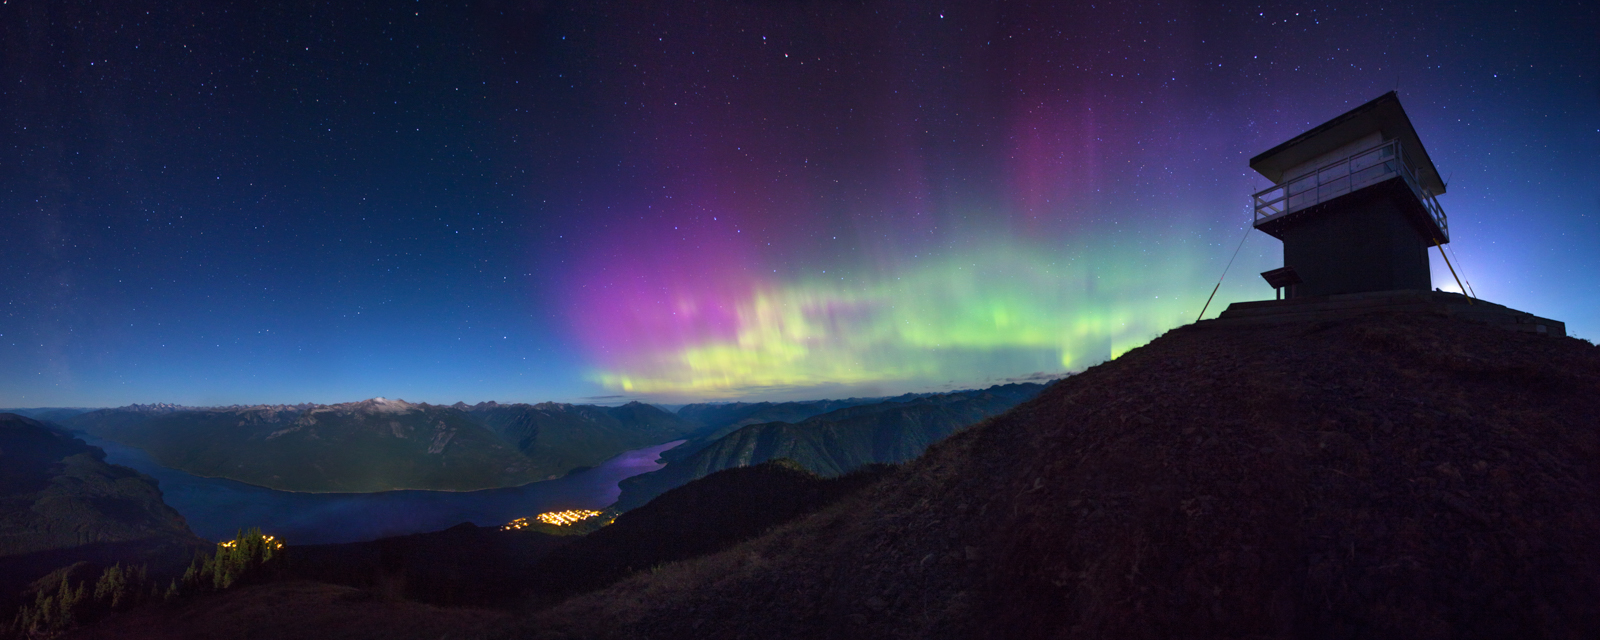 Northern Lights - Idaho Peak, BC